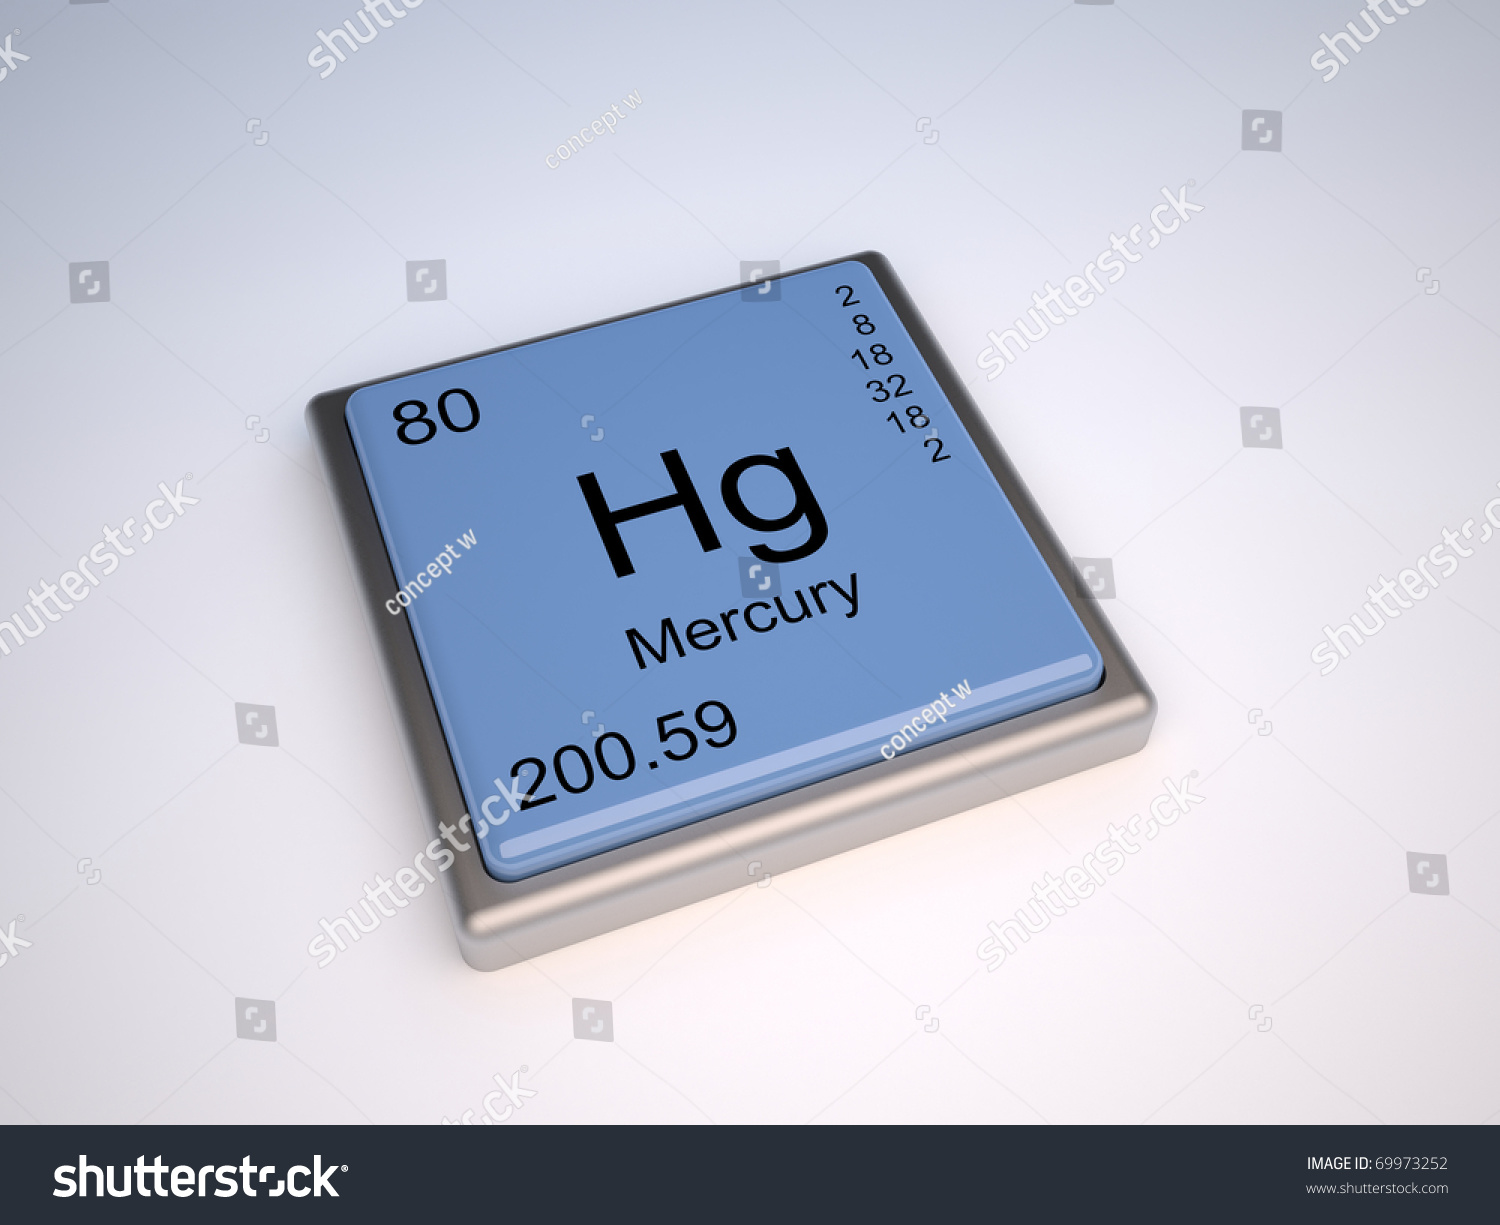 Mercury chemical element periodic table symbol stock illustration mercury chemical element of the periodic table with symbol hg iupac gamestrikefo Images